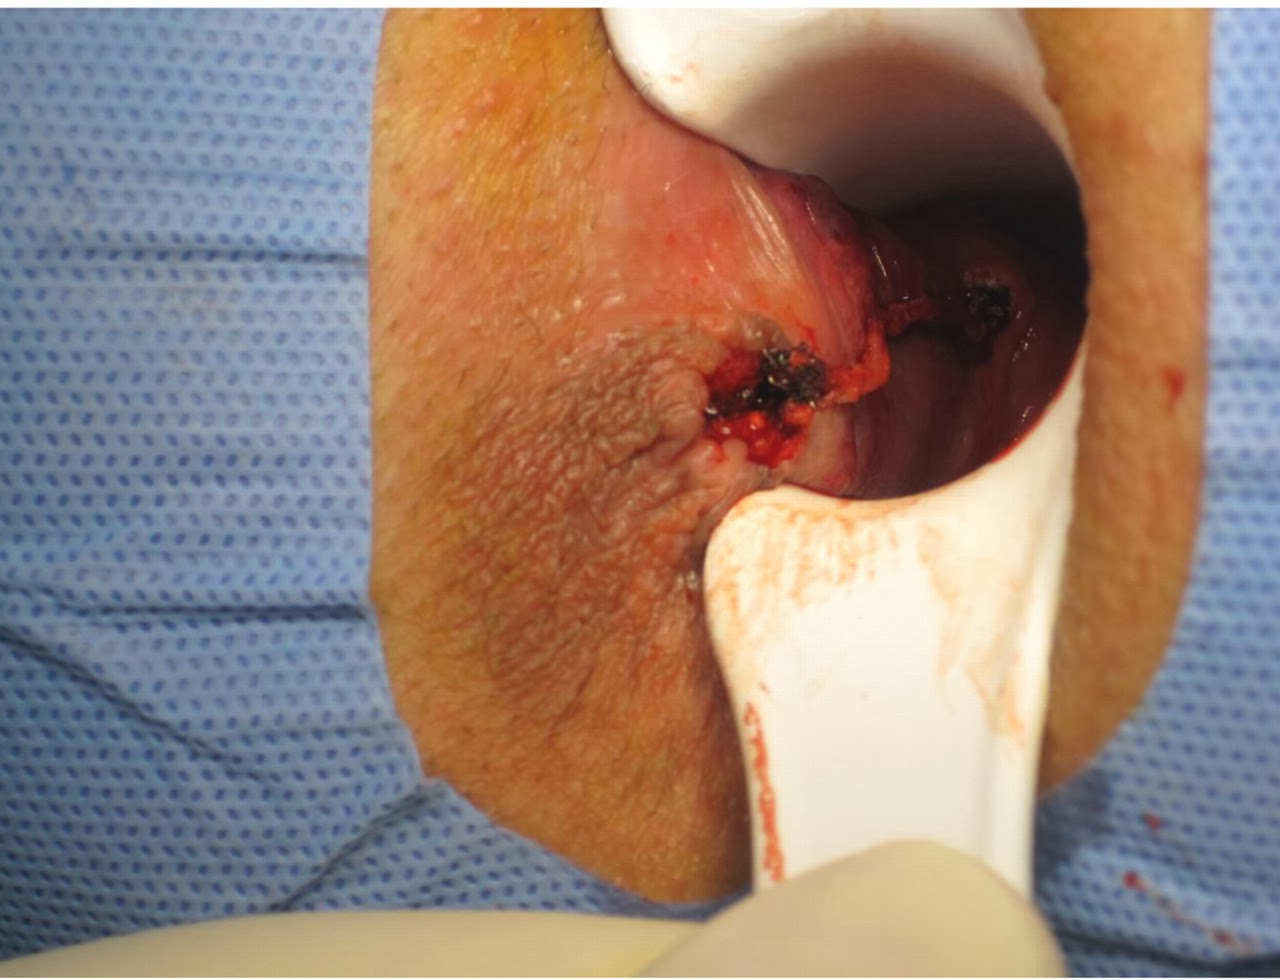 hemorrhoidectomy is the removal of hemorrhoidal tissue which contain    Internal Hemorrhoid Swelling